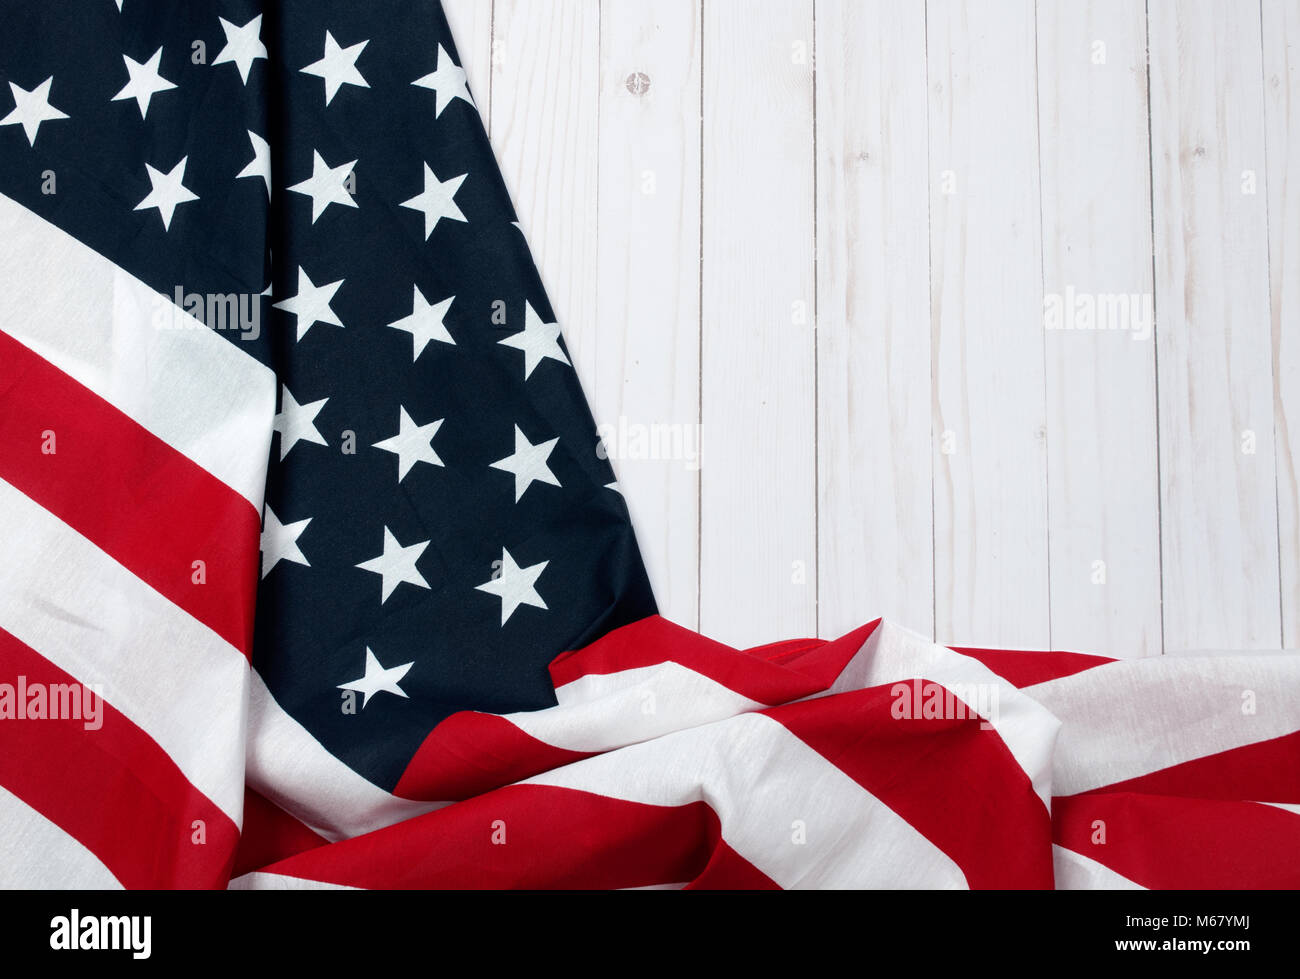 USA flag. American flag. American flag on wooden background Stock Photo